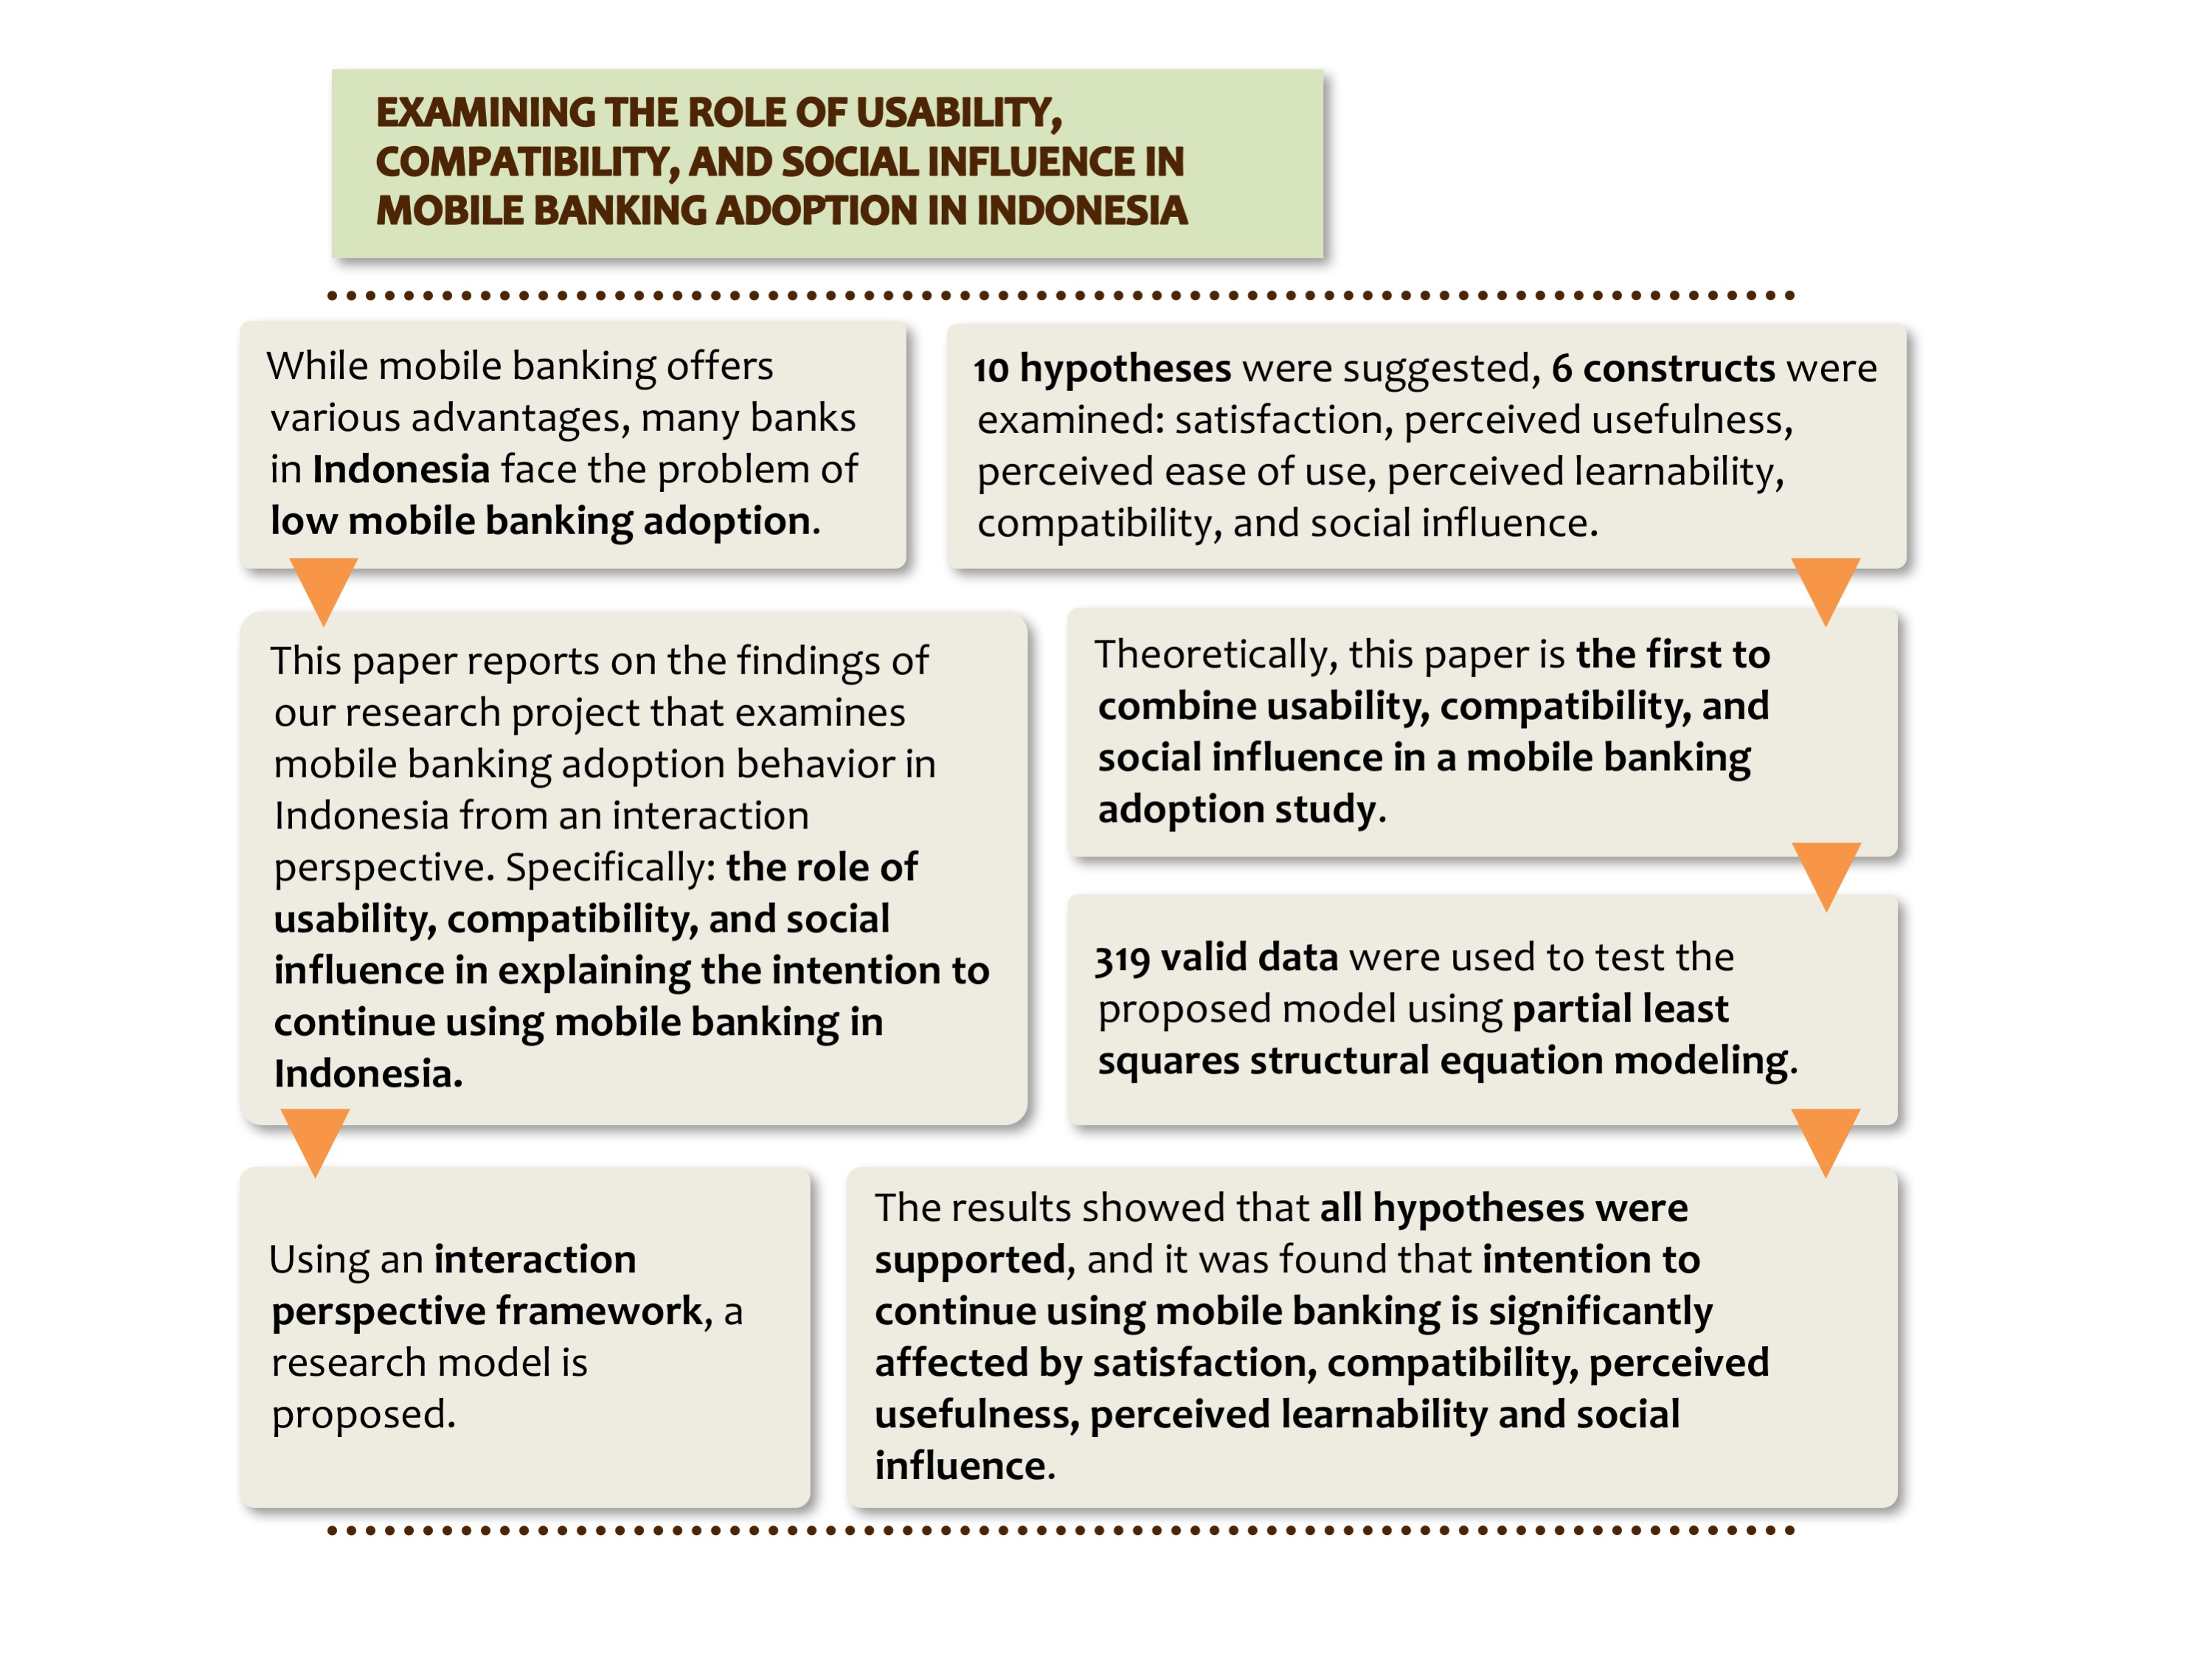 Examining the Role of Usability, Compatibility and Social Influence in Mobile Banking Adoption in Indonesia